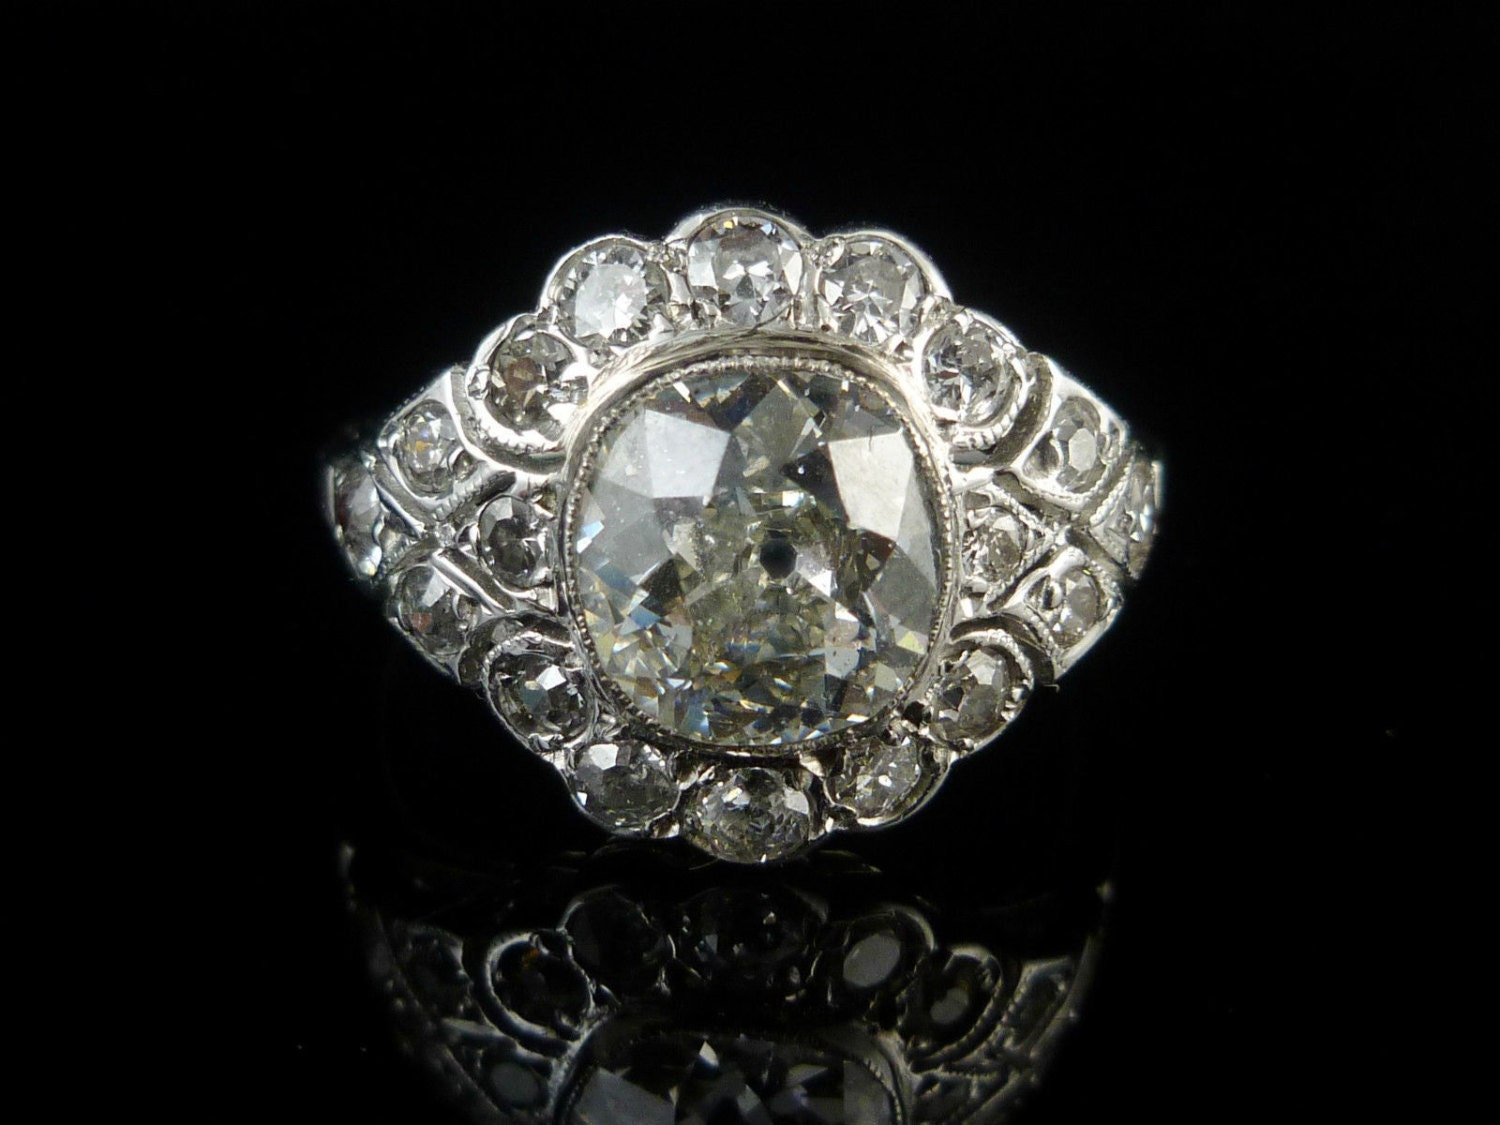 Antique Engagement Ring 3.26ct Old Cut Diamond 18ct White Gold Cluster Ring